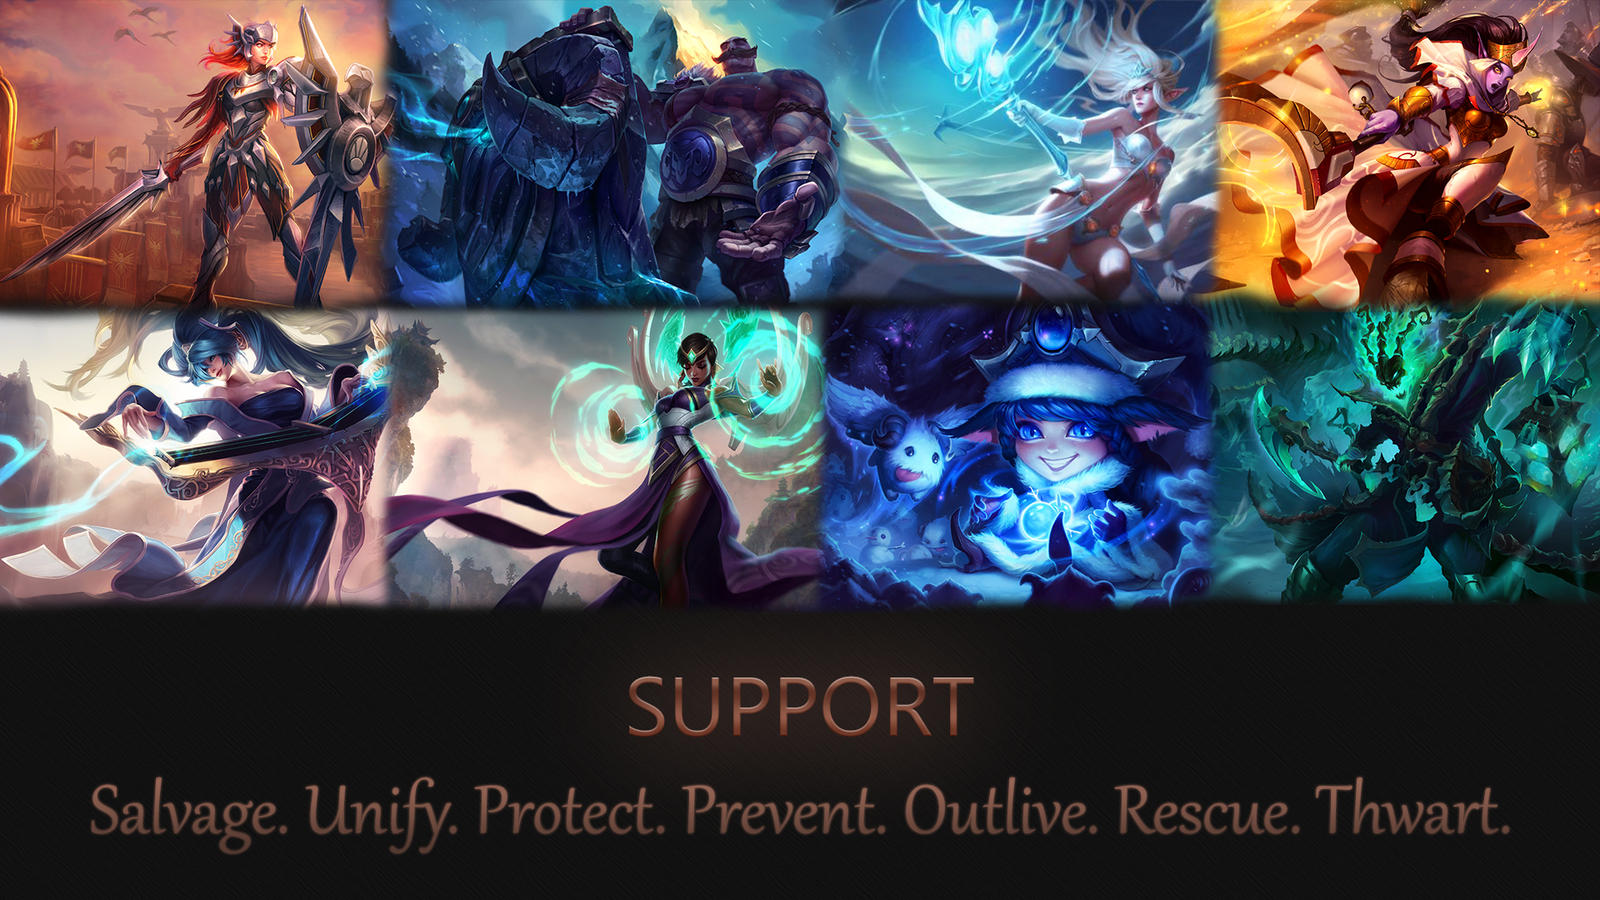 how to support in lol